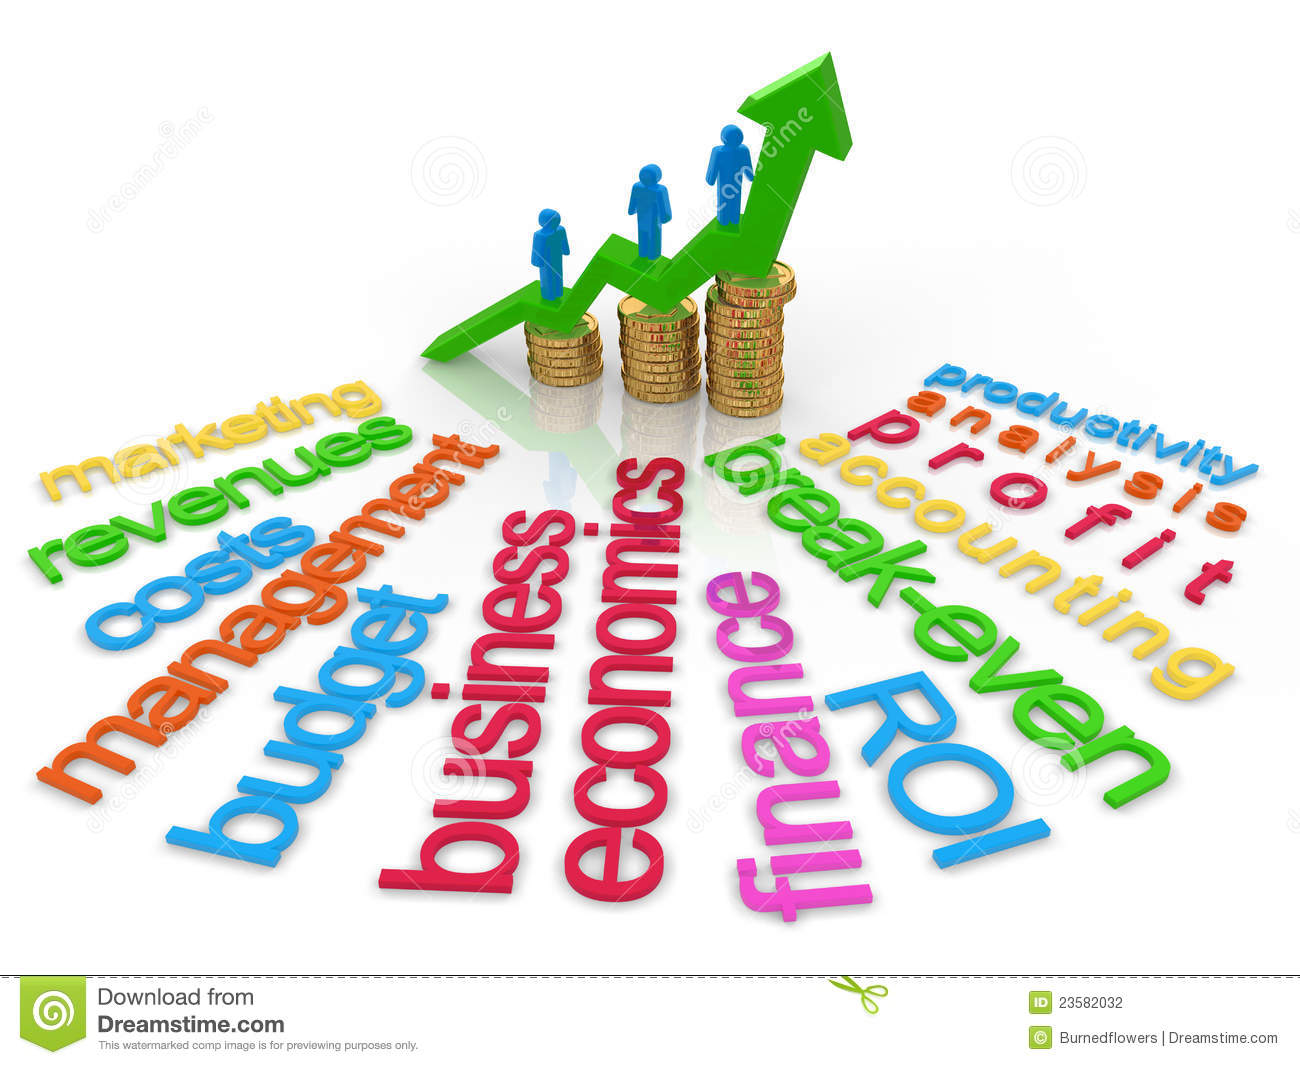 Economics clipart managerial economics. Businesss and coursework academic